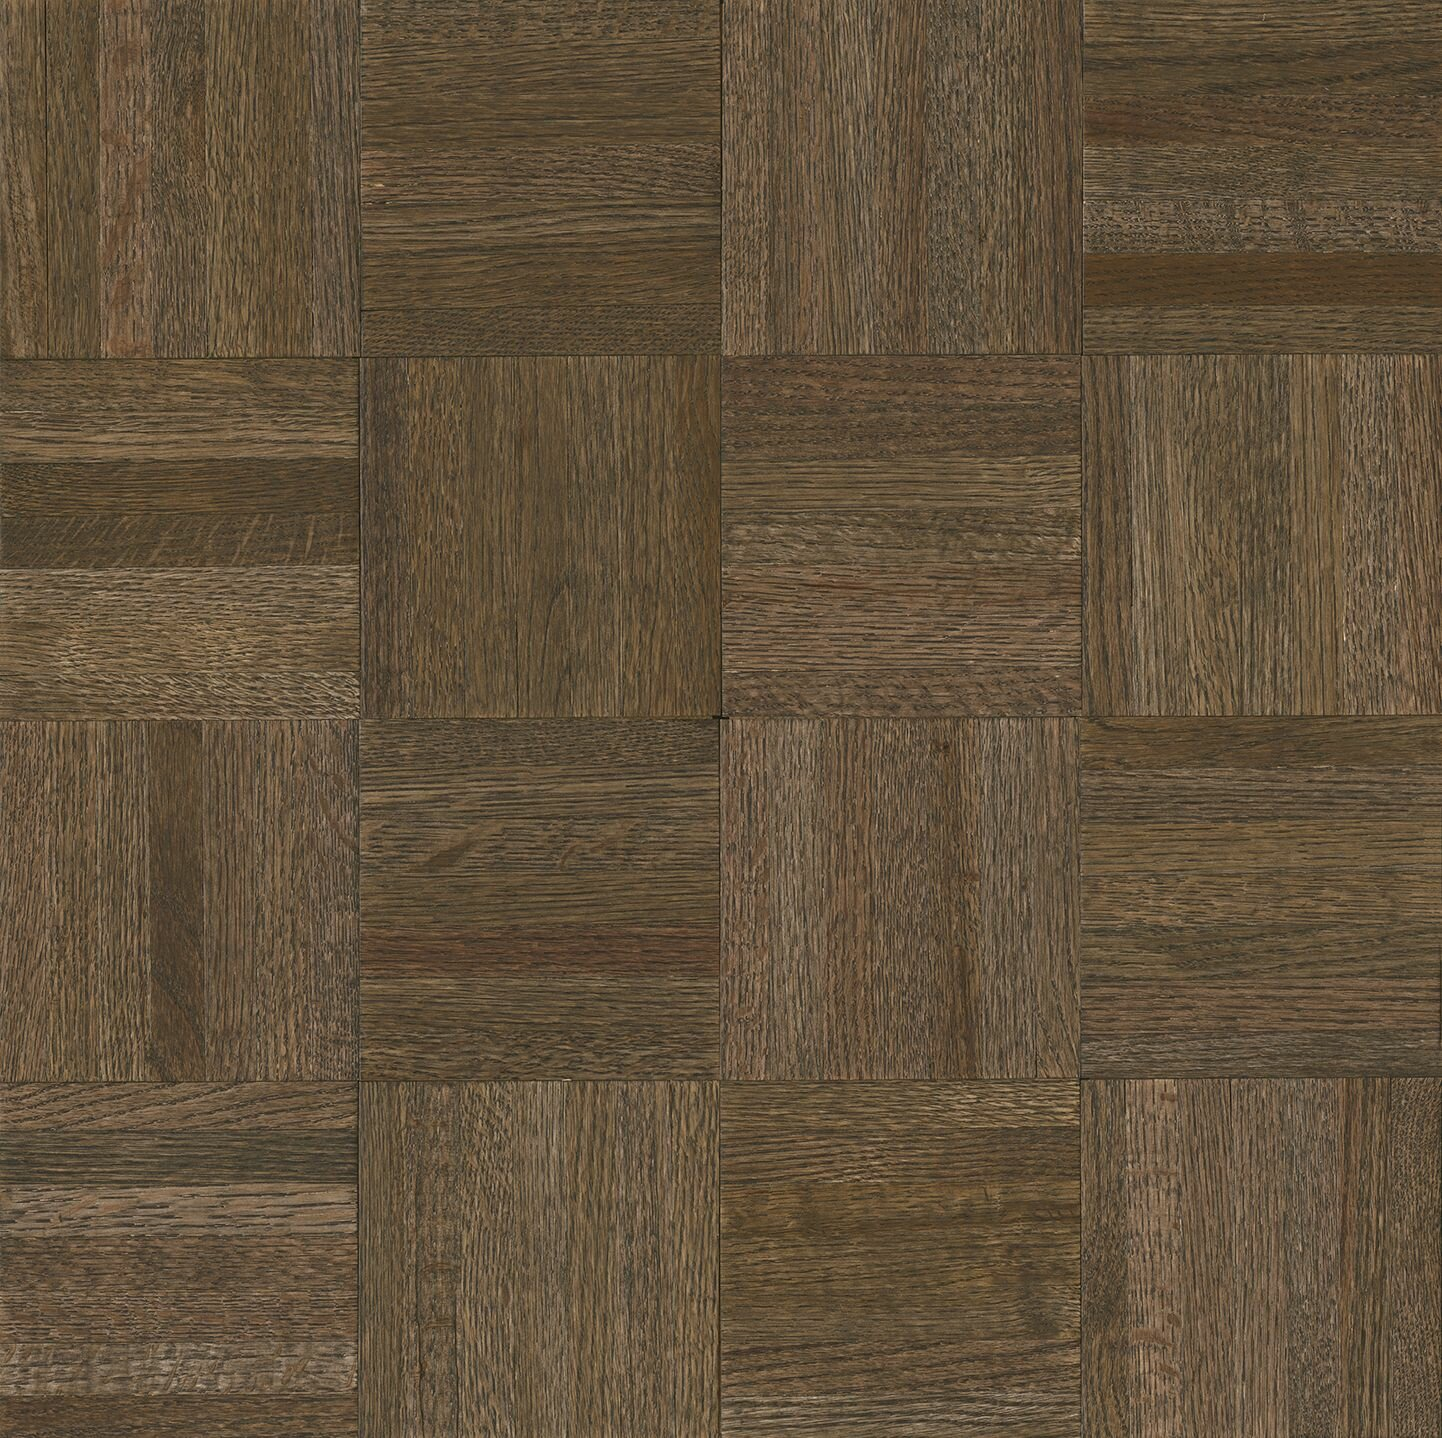 "Oak 5/5"" Thick x 5"" Wide Solid Parquet Hardwood Flooring in , Use in , Use"